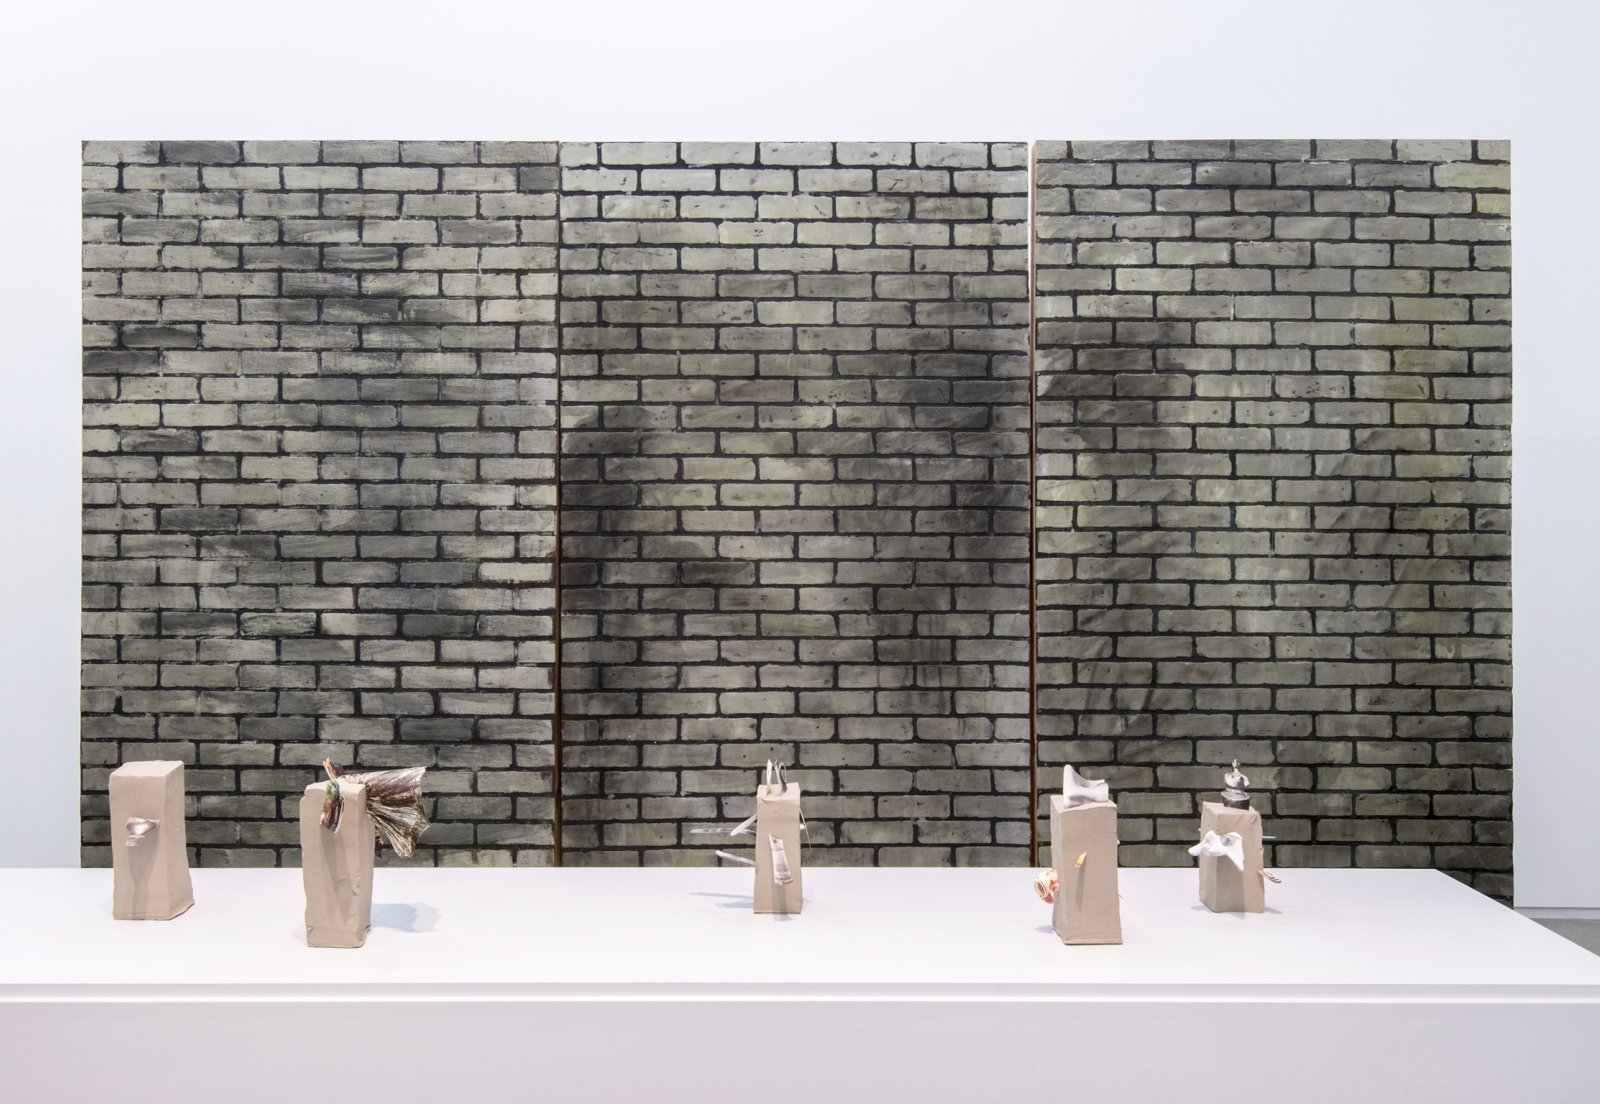 Geoffrey Farmer,Archaeology with Looking at a photograph of myself and realizing I had a potato instead of a head (Fountain)(detail), 2014, vitrine with cut-outs mounted on 5 vertical clay slabs, 4 wooden wall brick façades, paint, sandbags, framed cut-outs and ink mounted on paper, dimensions variable